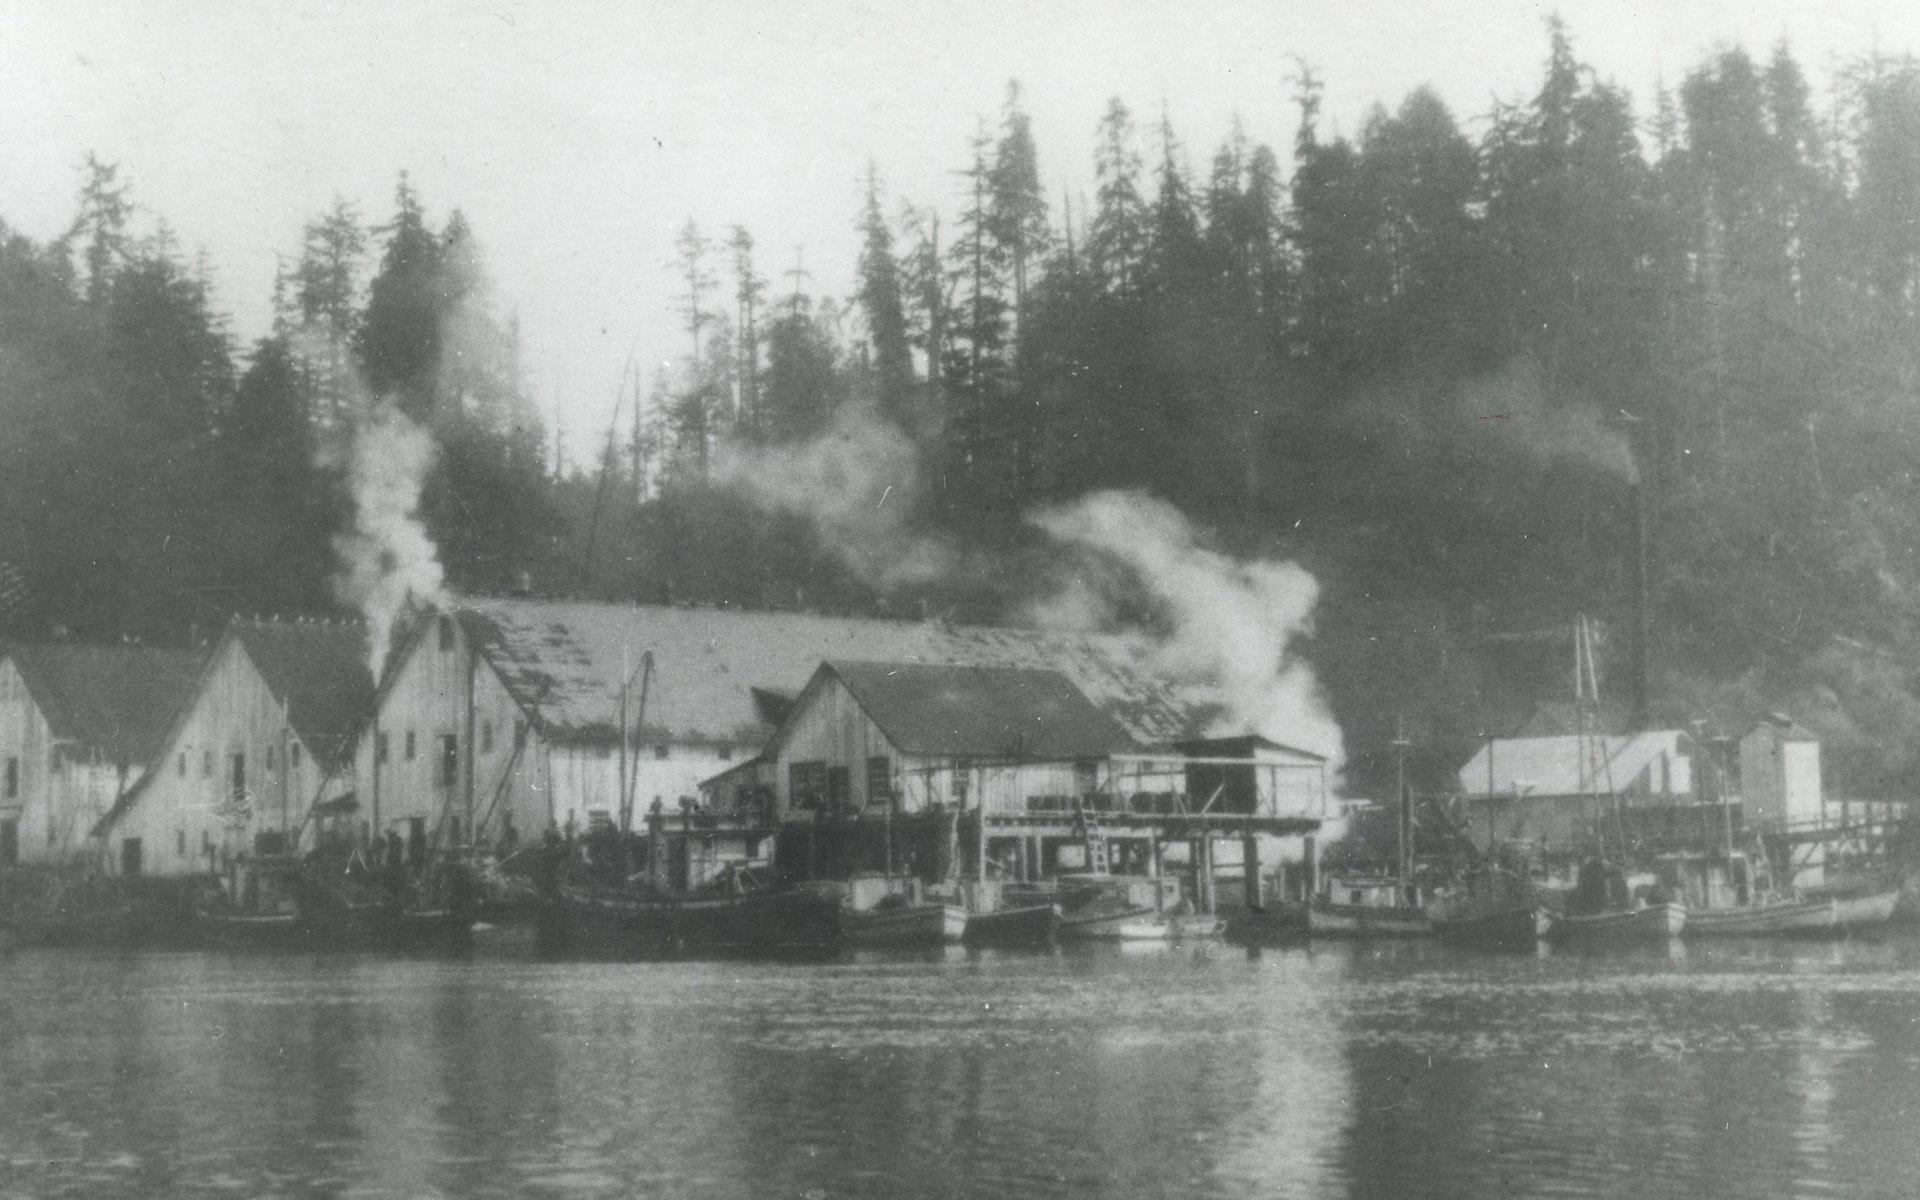 Steam rising from the buildings of the Nitnat Cannery.